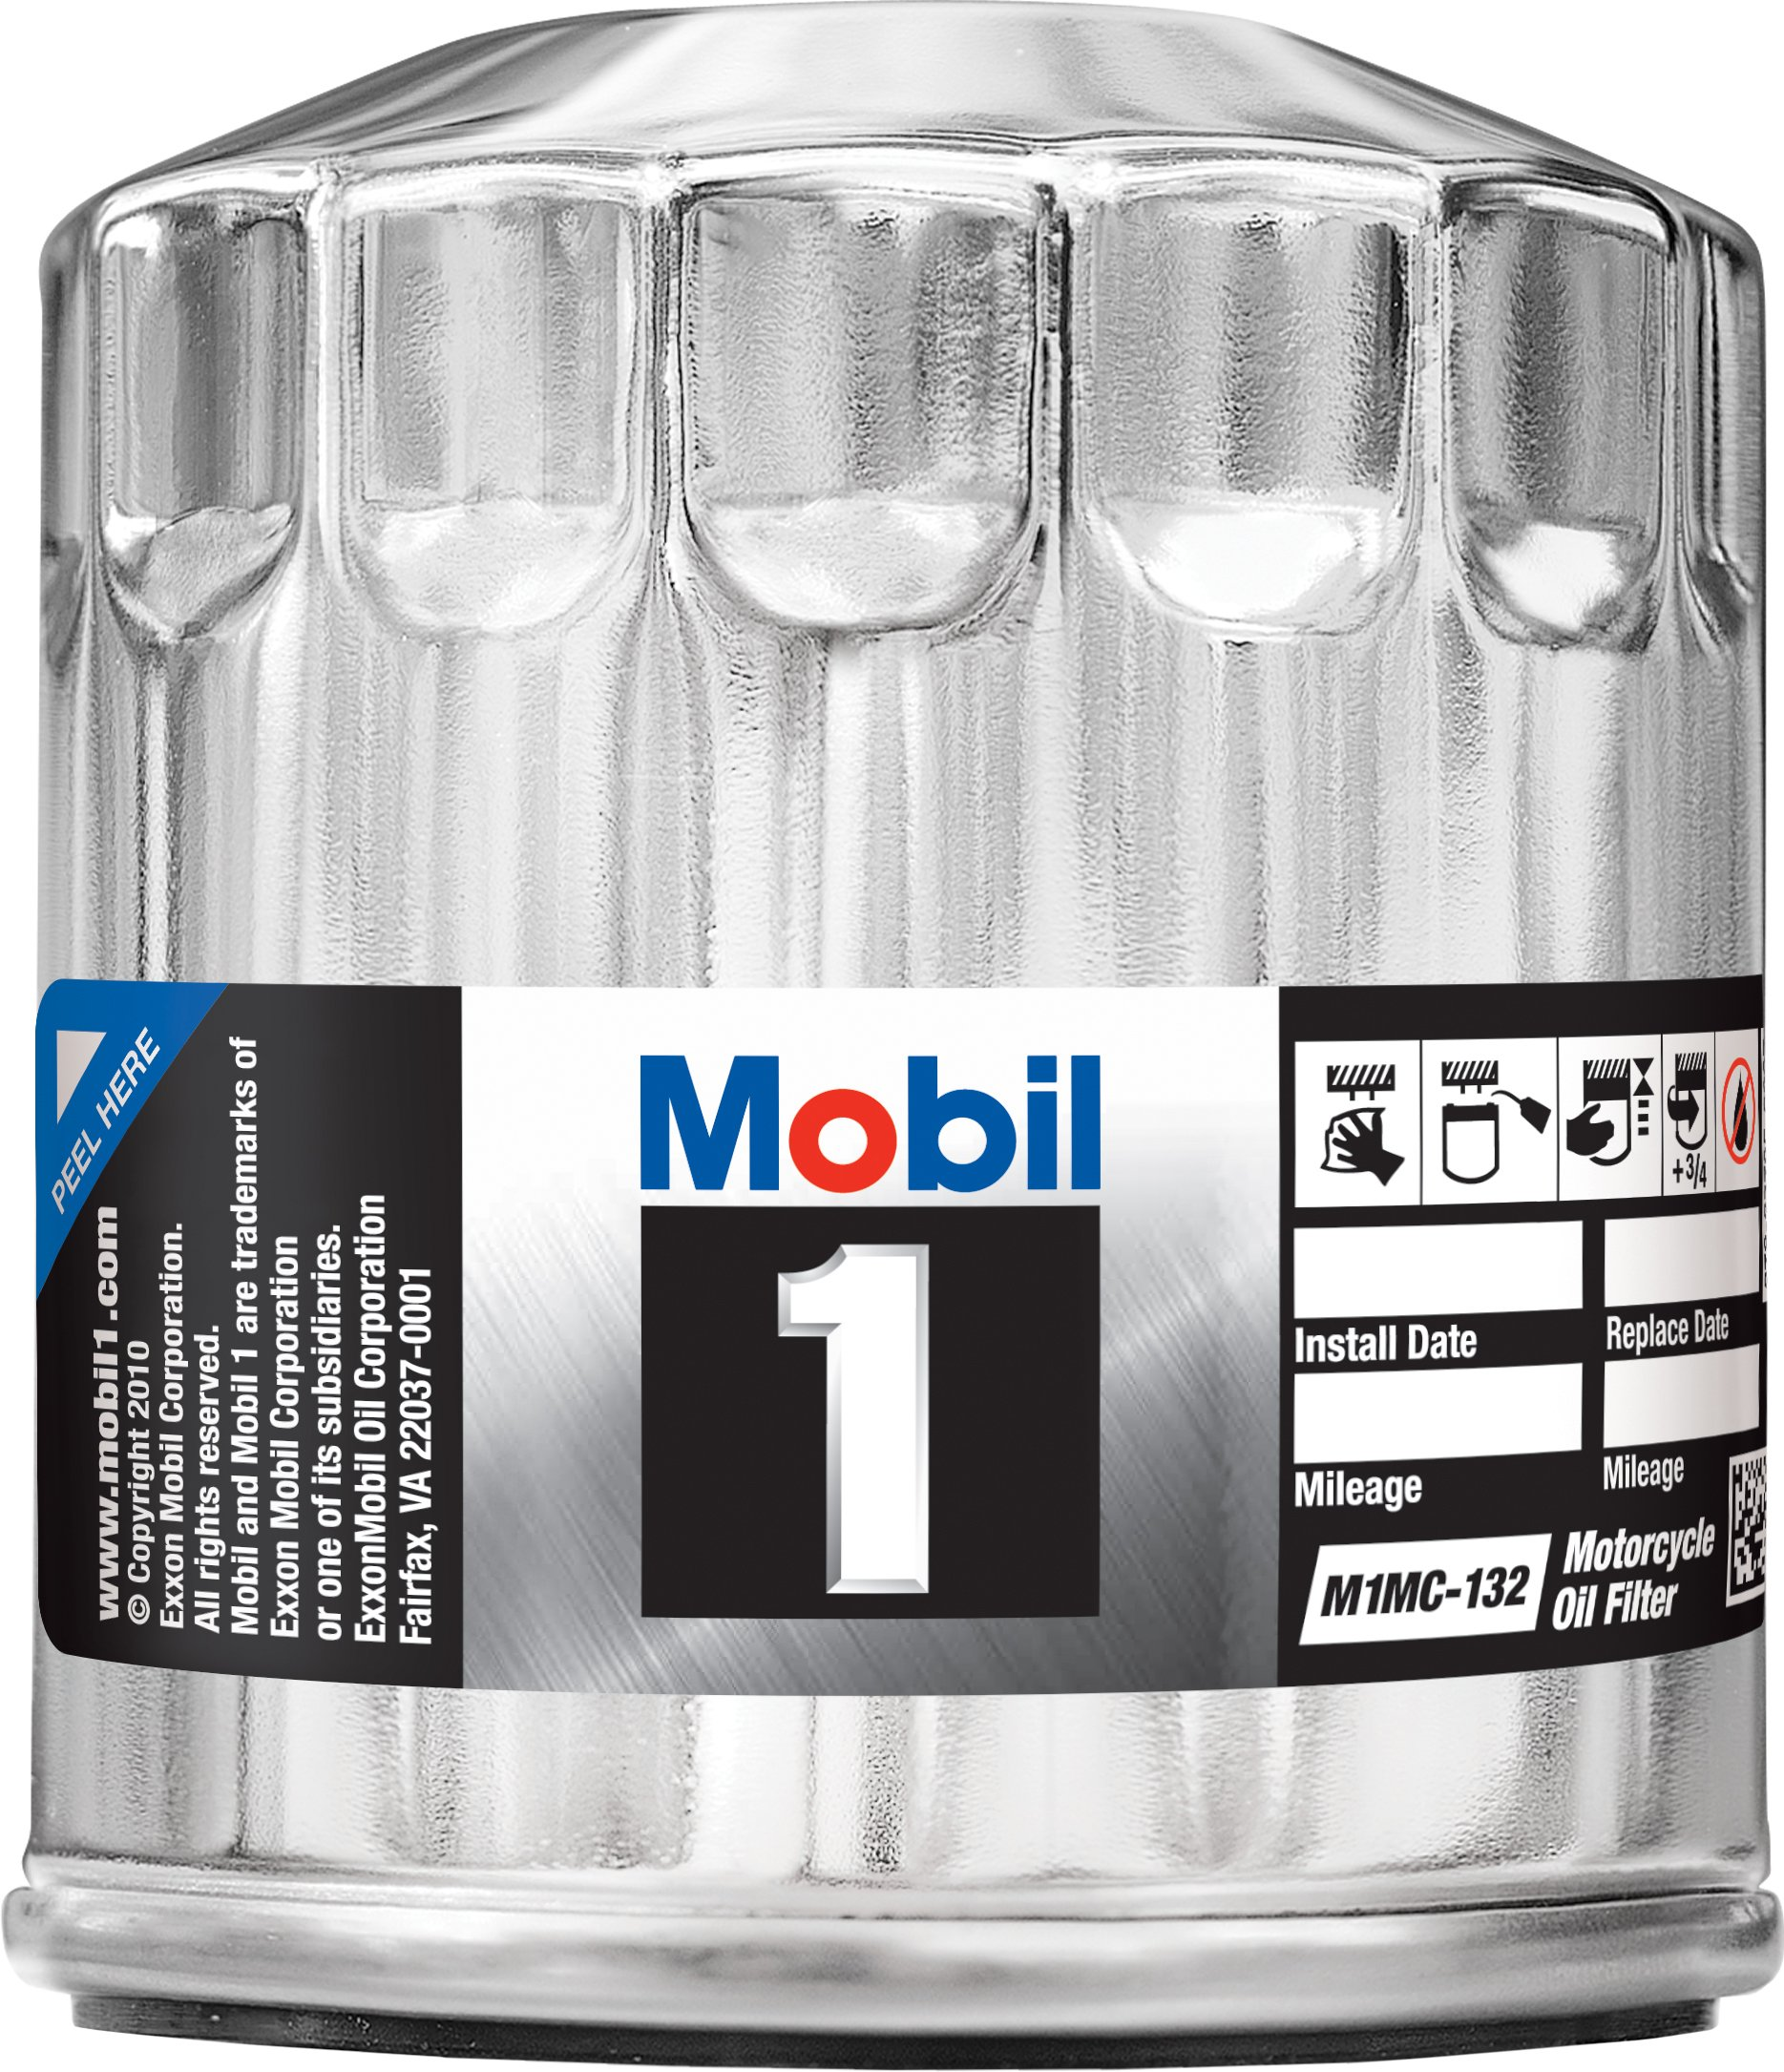 Mobil 1 M1MC-132 Motorcycle Oil Filter, Chrome (Pack of 6) by Mobil 1